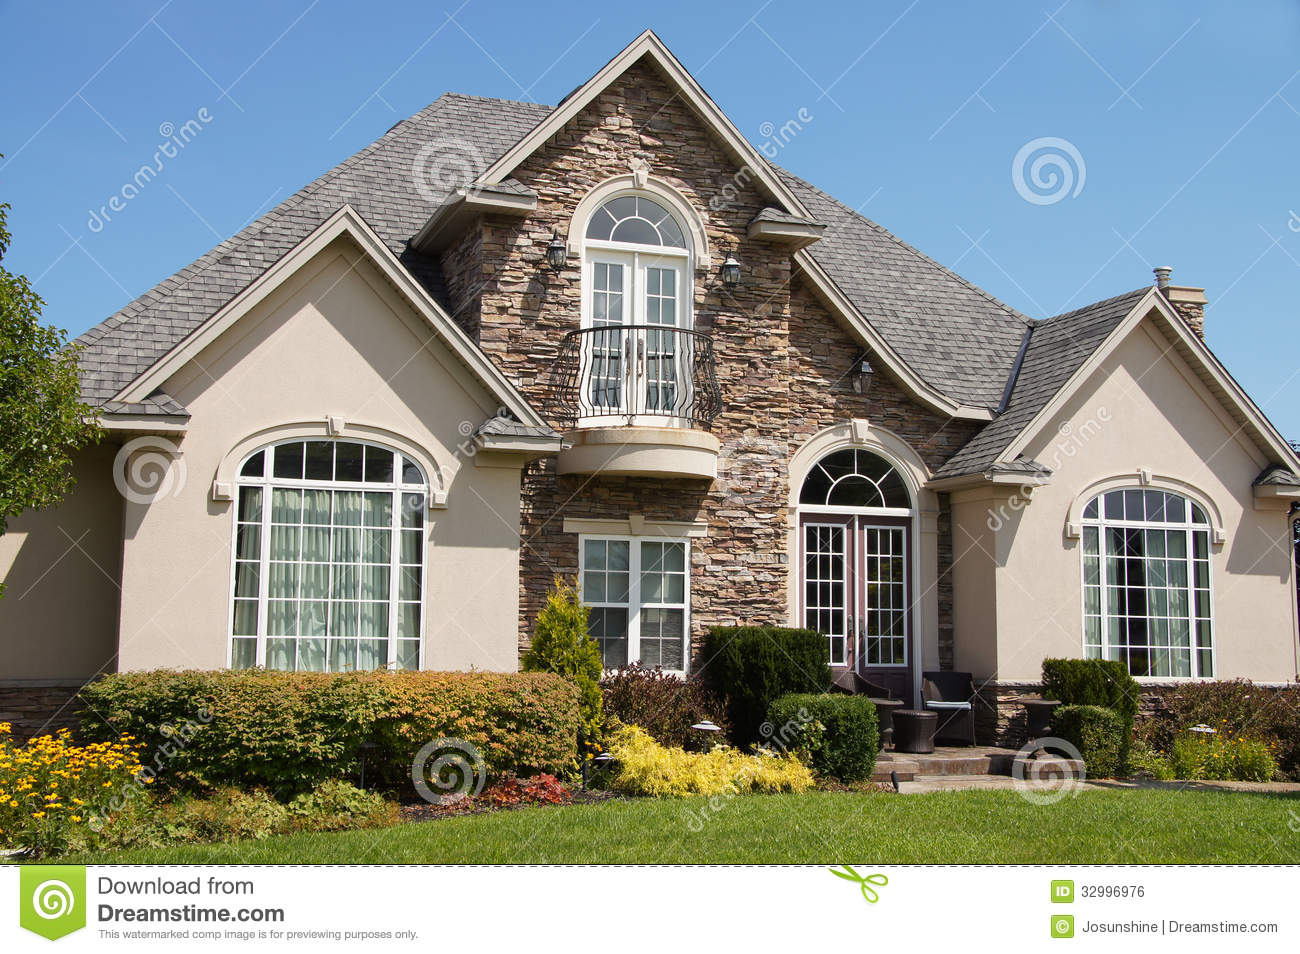 8 Bedroom House Floor Plans Stucco Stone House Pretty Windows Stock Photo Image Of